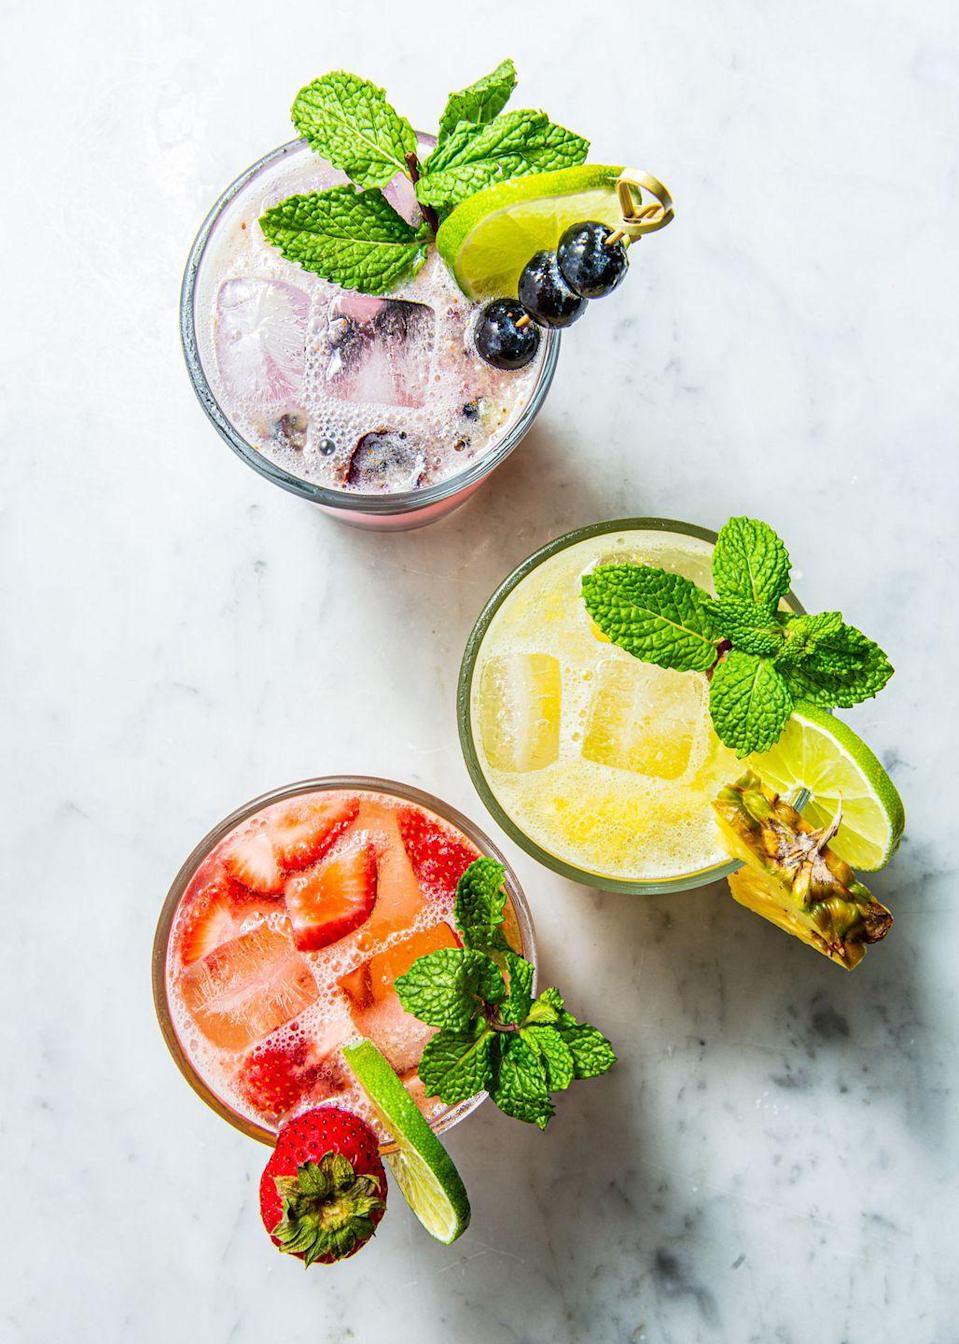 """<p>Turn your night into a pick-your-own-cocktail night with mojitos made with strawberry, blueberry, or pineapple. Whatever you choose, you're right.<br></p><p>Get the recipe from <a href=""""https://www.delish.com/cooking/recipes/a53357/blueberry-pineapple-strawberry-mojito-recipes/"""" rel=""""nofollow noopener"""" target=""""_blank"""" data-ylk=""""slk:Delish"""" class=""""link rapid-noclick-resp"""">Delish</a>.</p>"""